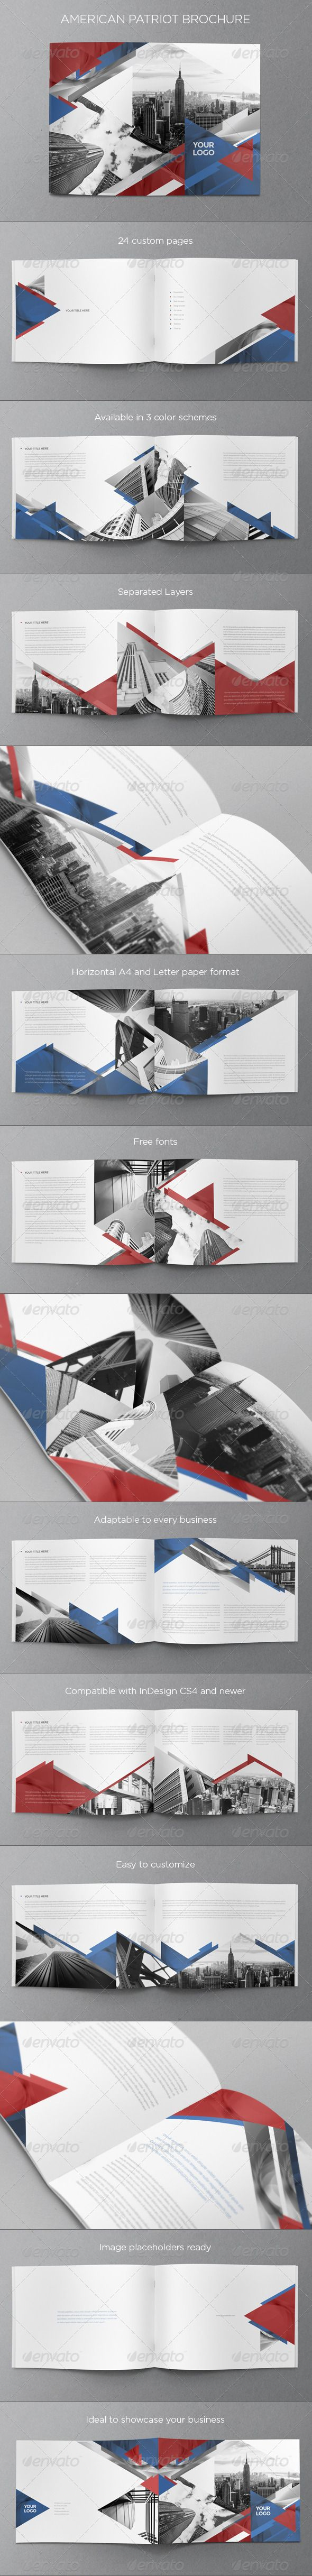 American Patriot Brochure — InDesign INDD #patriot #triangle • Available here → https://graphicriver.net/item/american-patriot-brochure/6339354?ref=pxcr